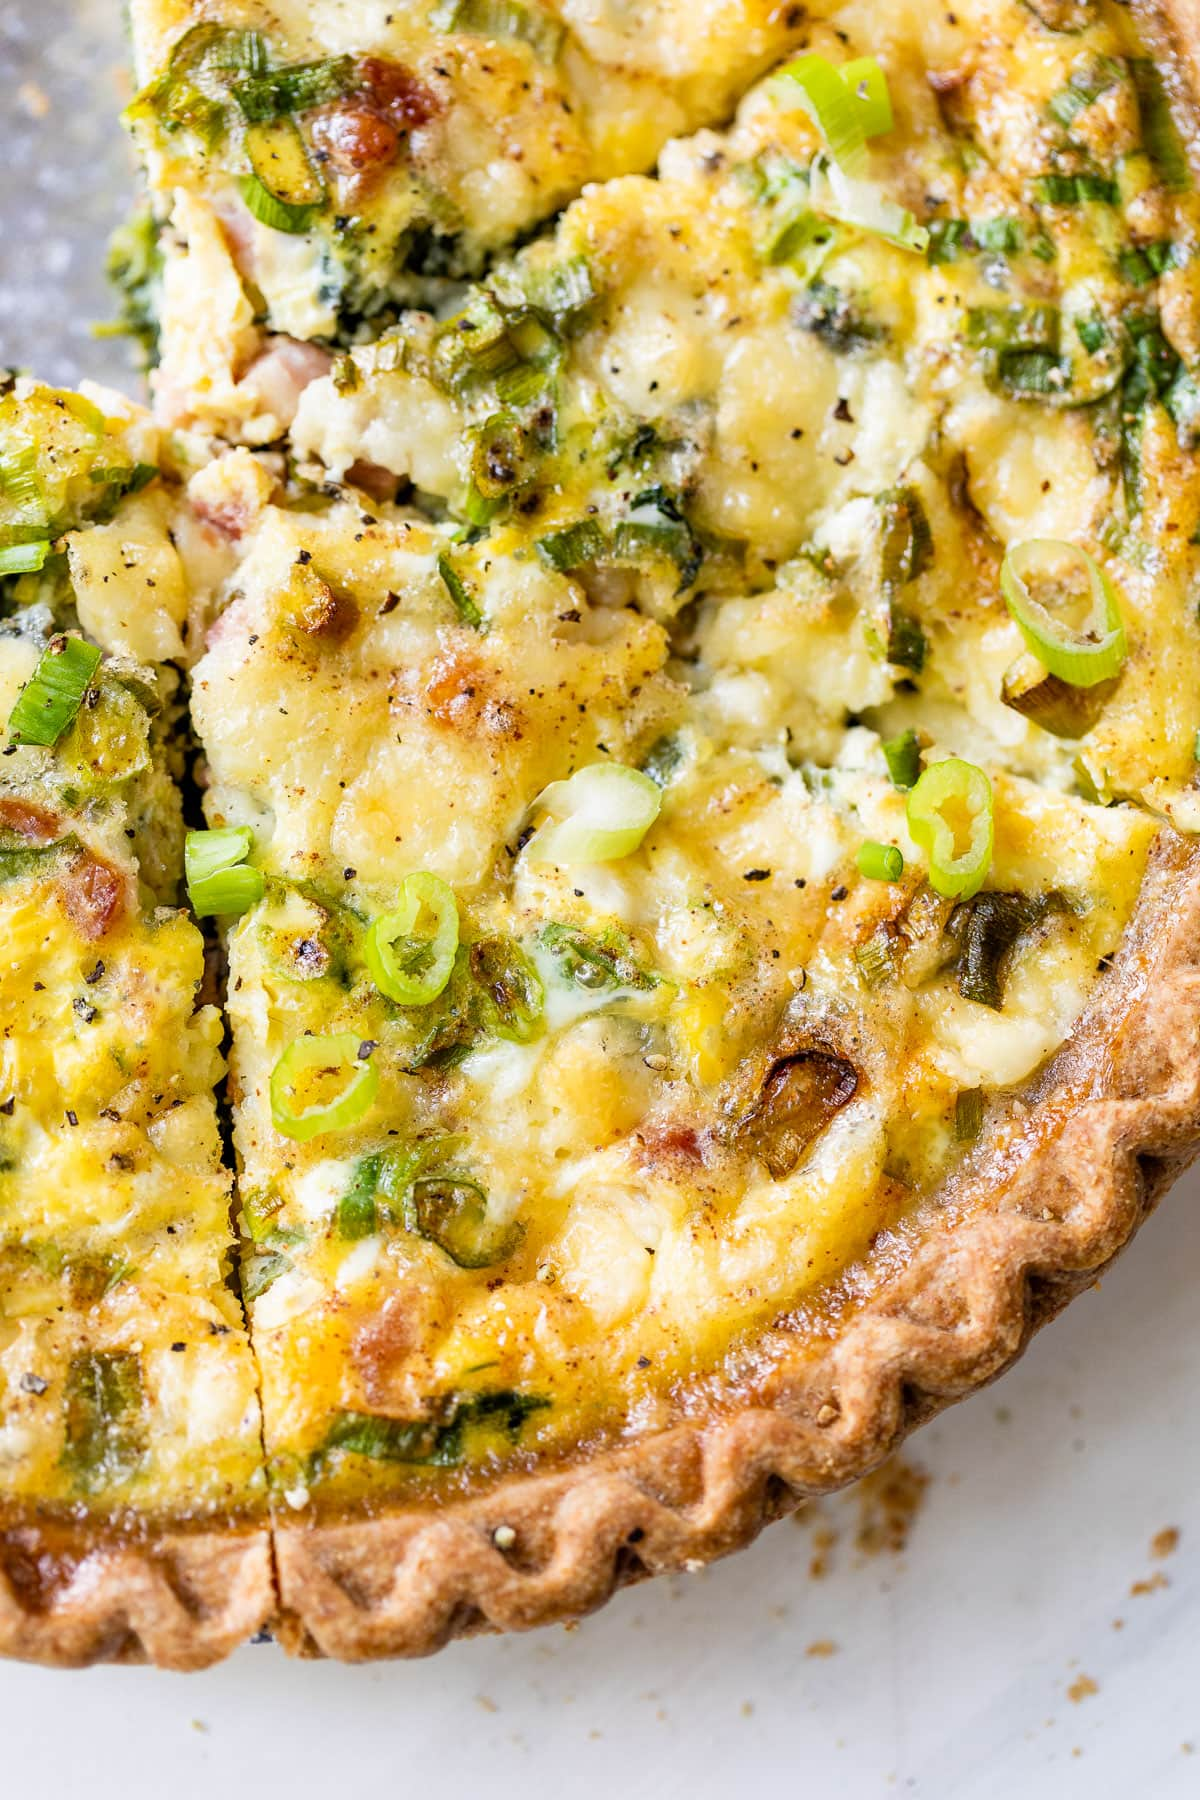 Sunburst Spring Vegetable Quiche in an Easy Puff Pastry Crust. With asparagus, carrots, and leeks